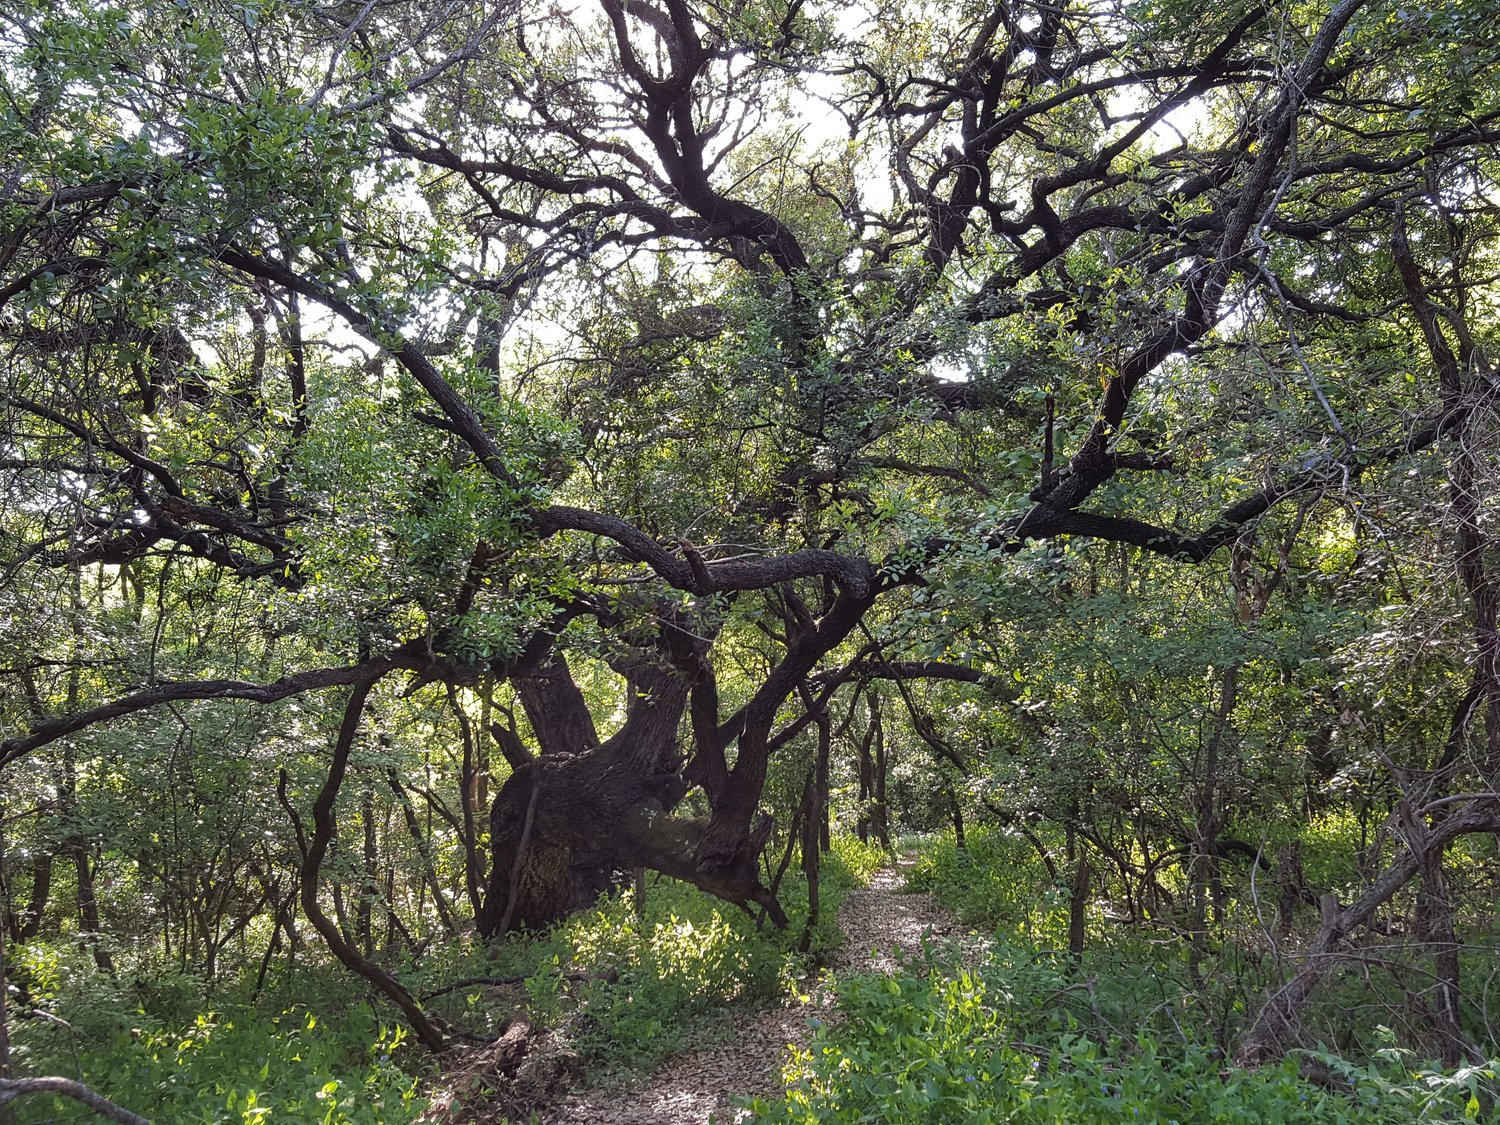 The Spirit Among the Great Oaks — Headwaters at Incarnate Word